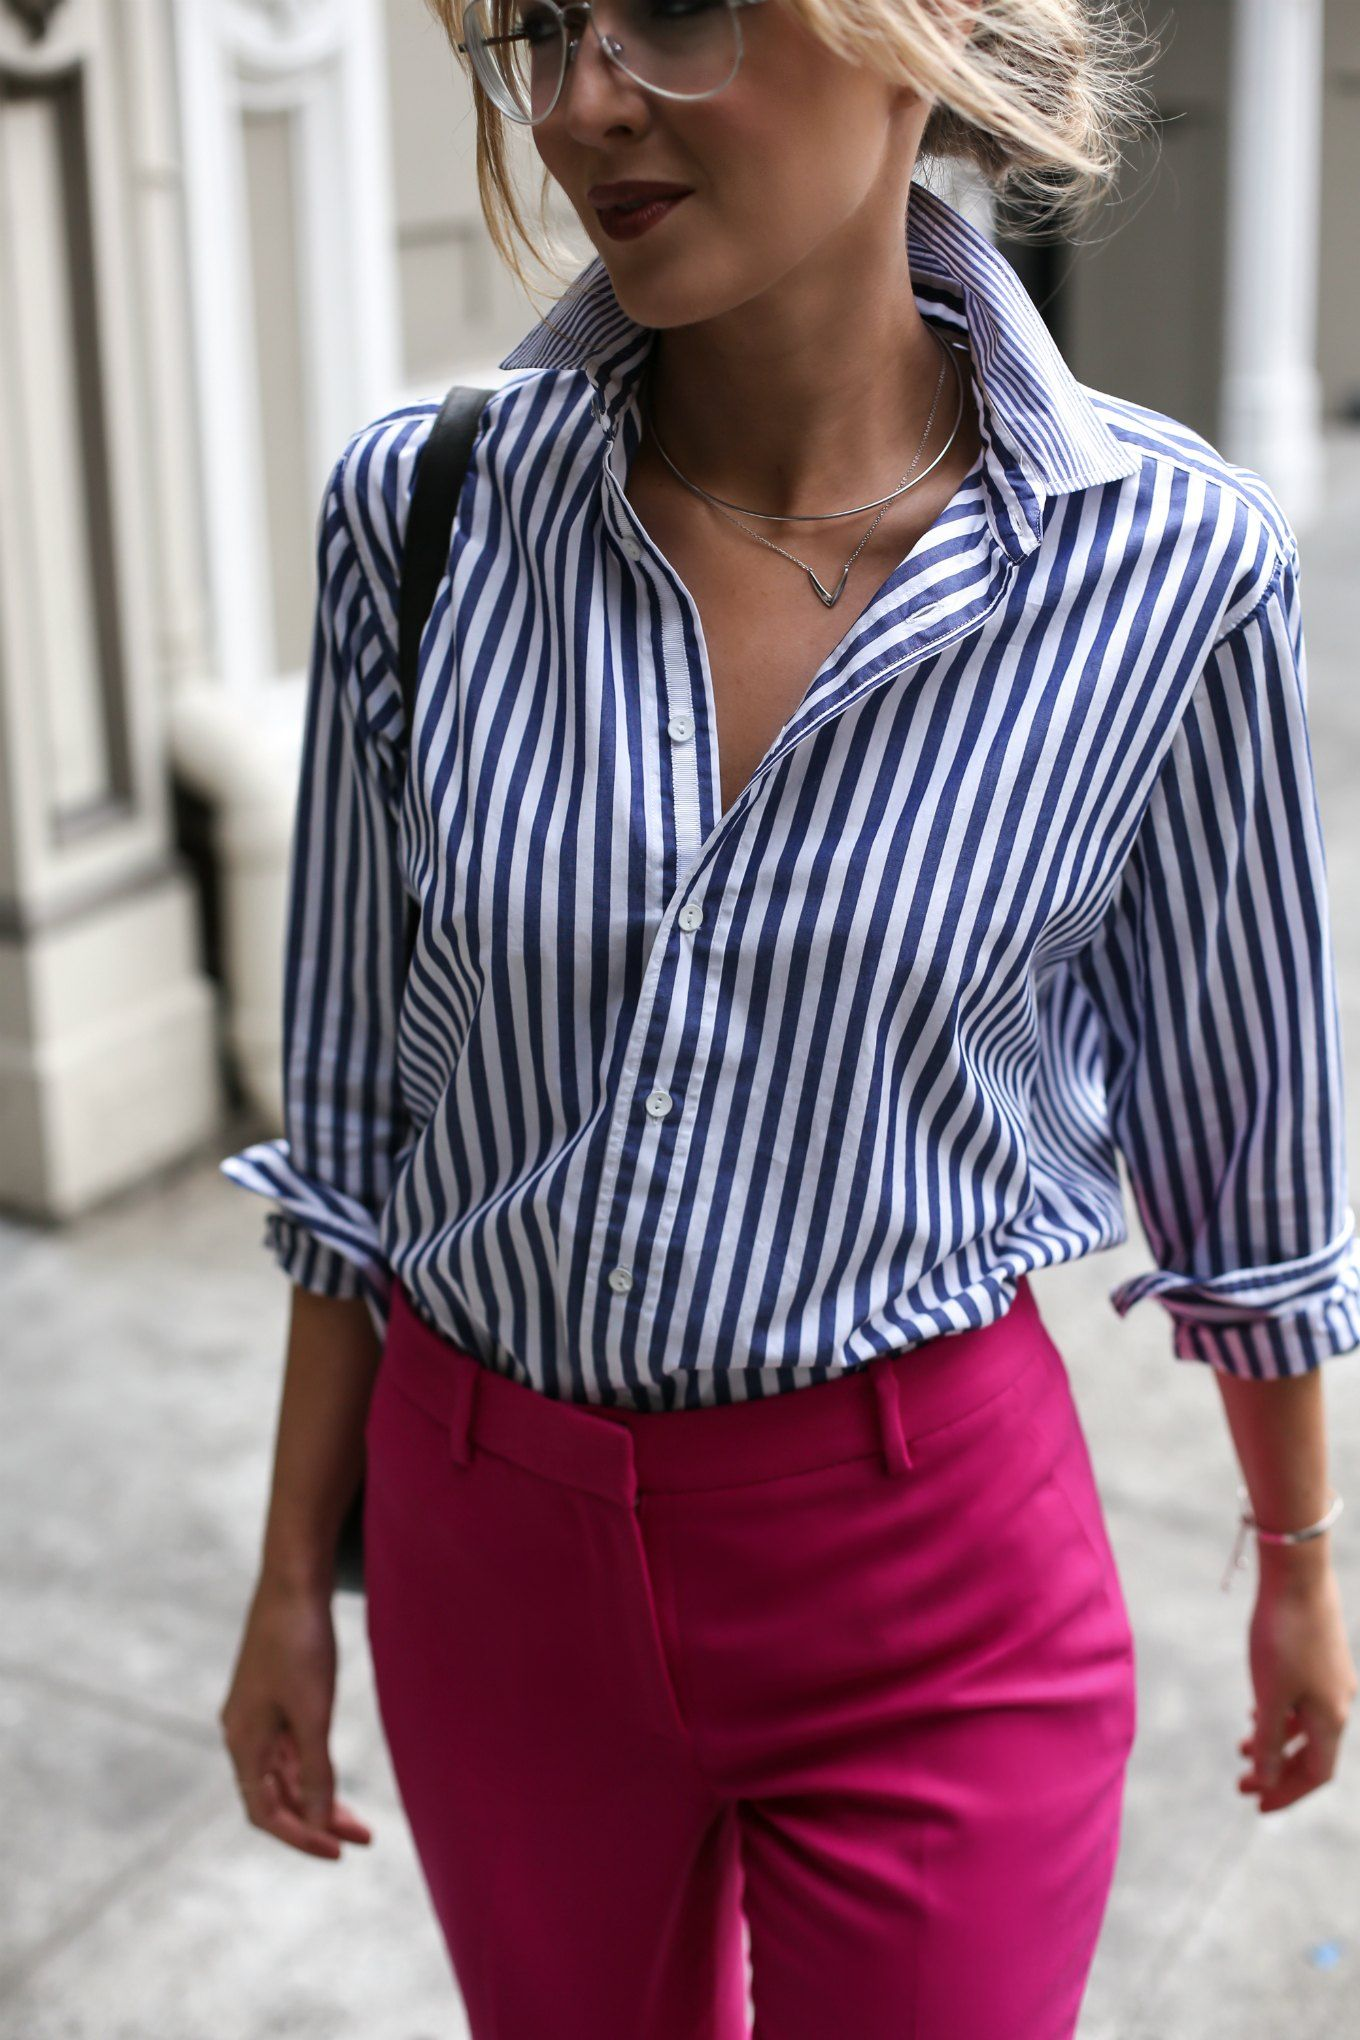 Fall Fuchsia | Summer work outfits, Chic office outfit ...